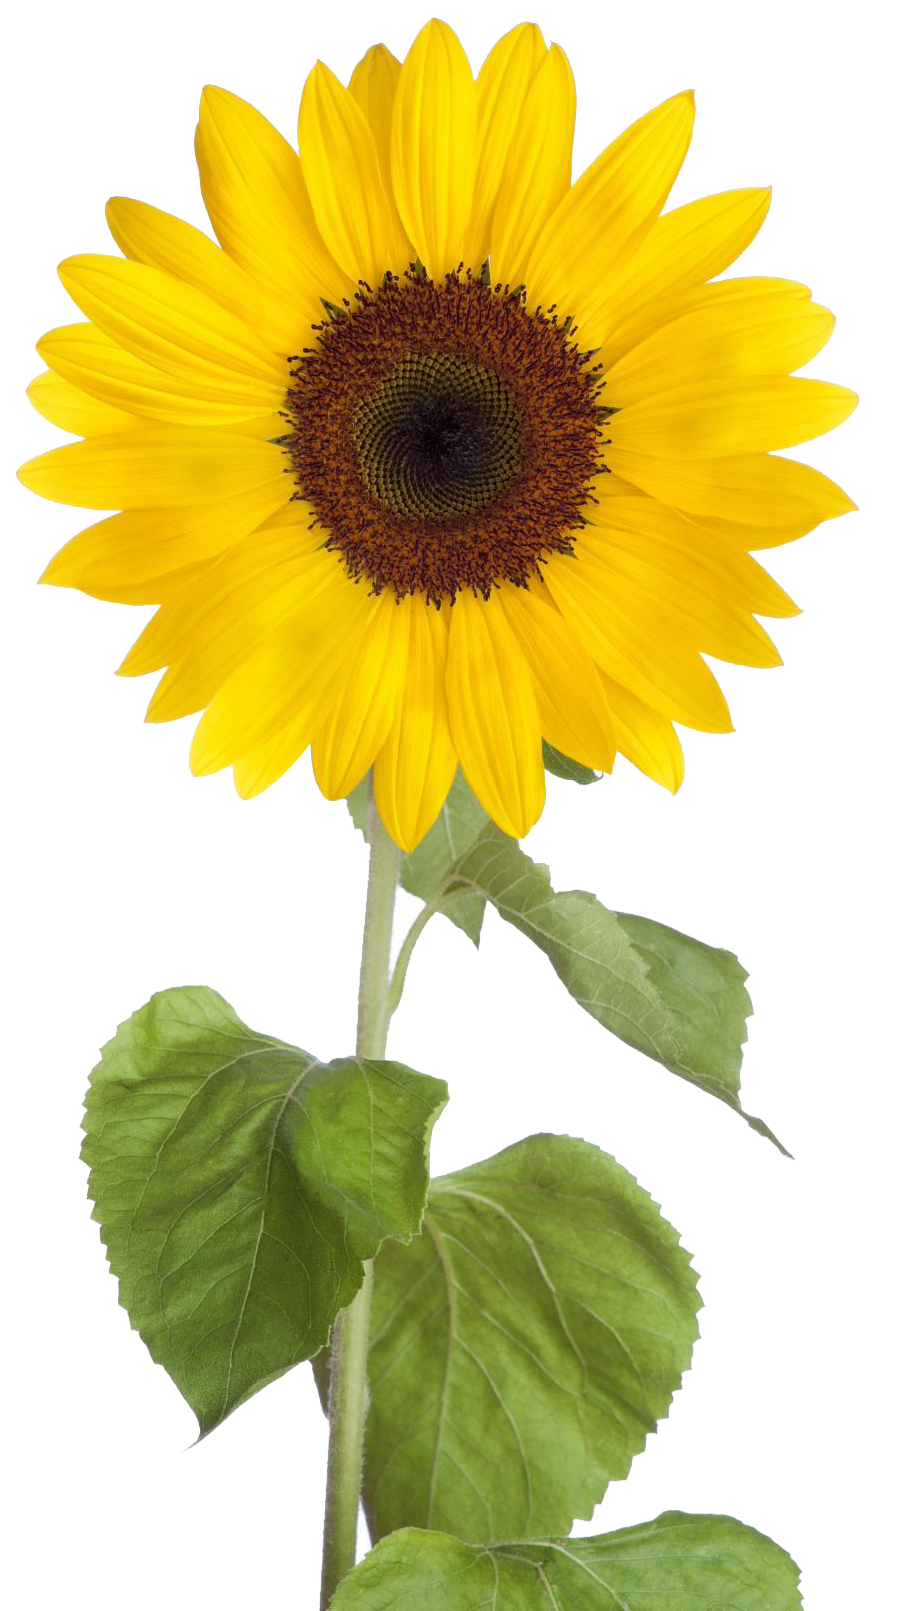 Sunflower PNG Free Download - Sunflowers PNG